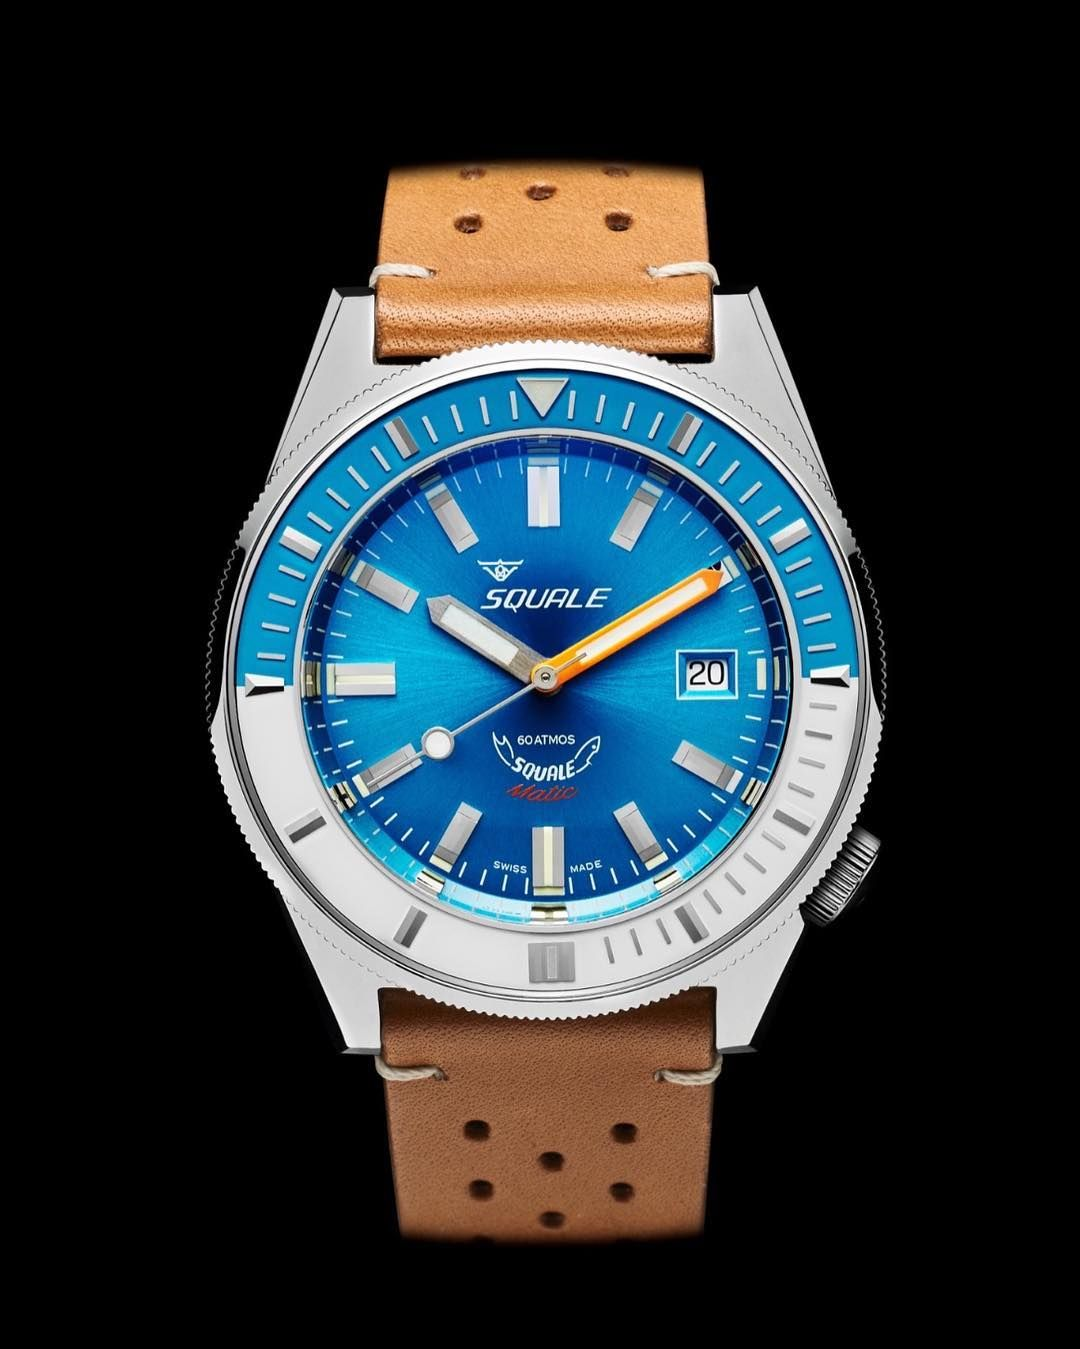 matic watches automatic movement sapphire atmos domed squale pin